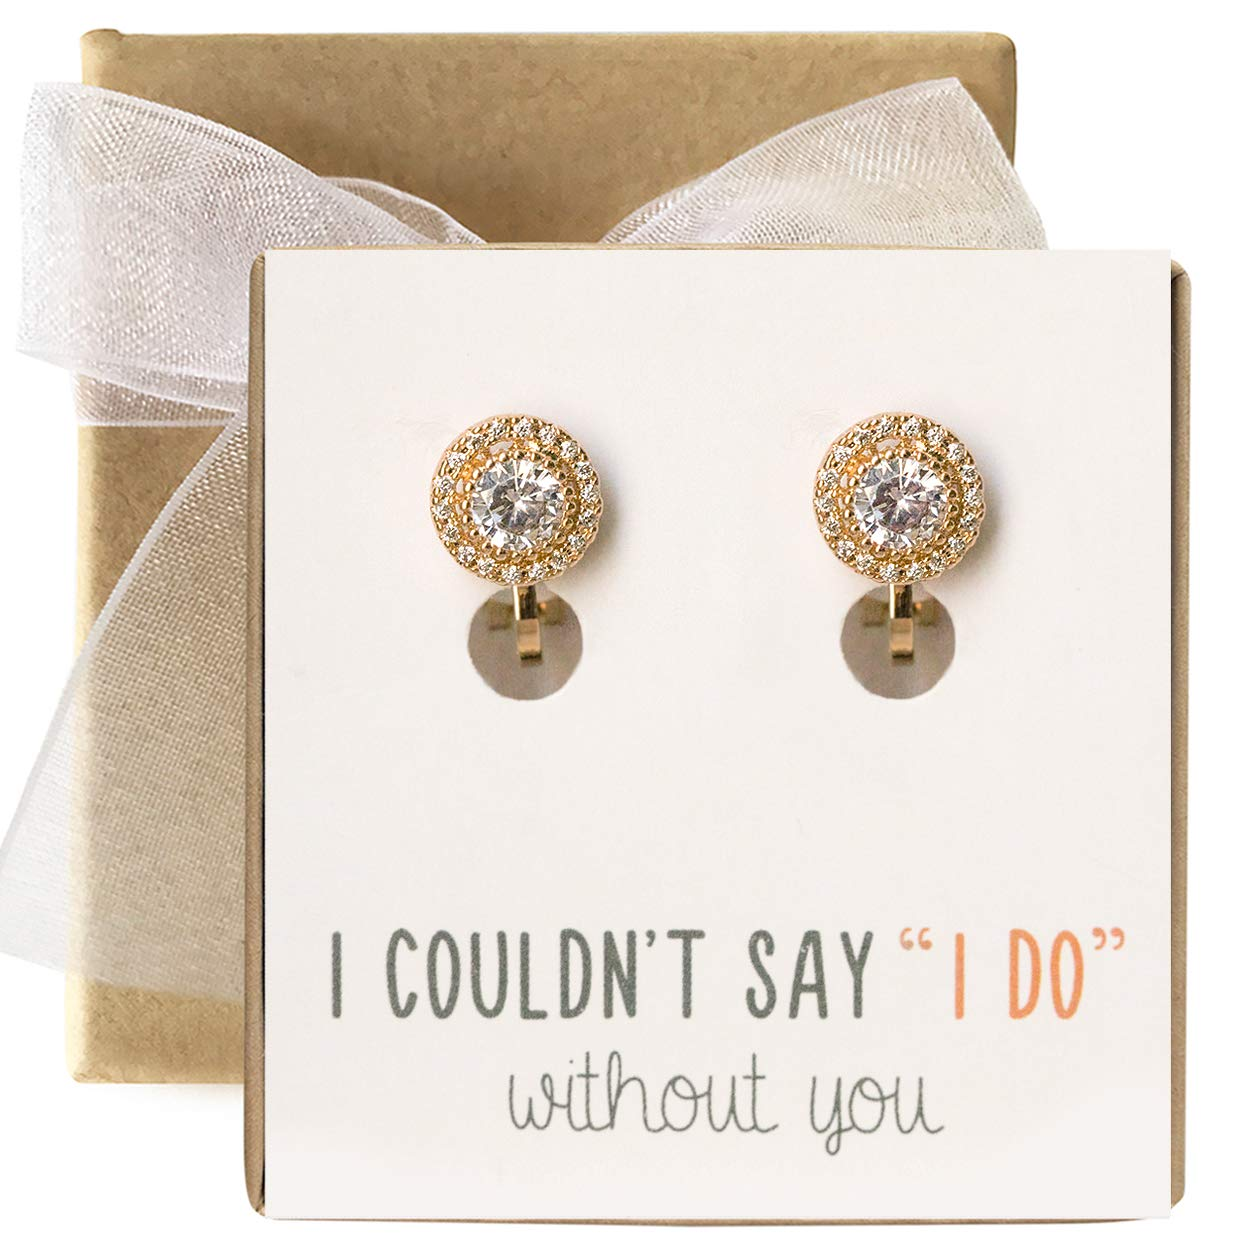 82f7683099b27 Bridesmaid Jewelry - Stud Earrings, Clip-ons, Necklace in Silver, Gold or  Rose Gold